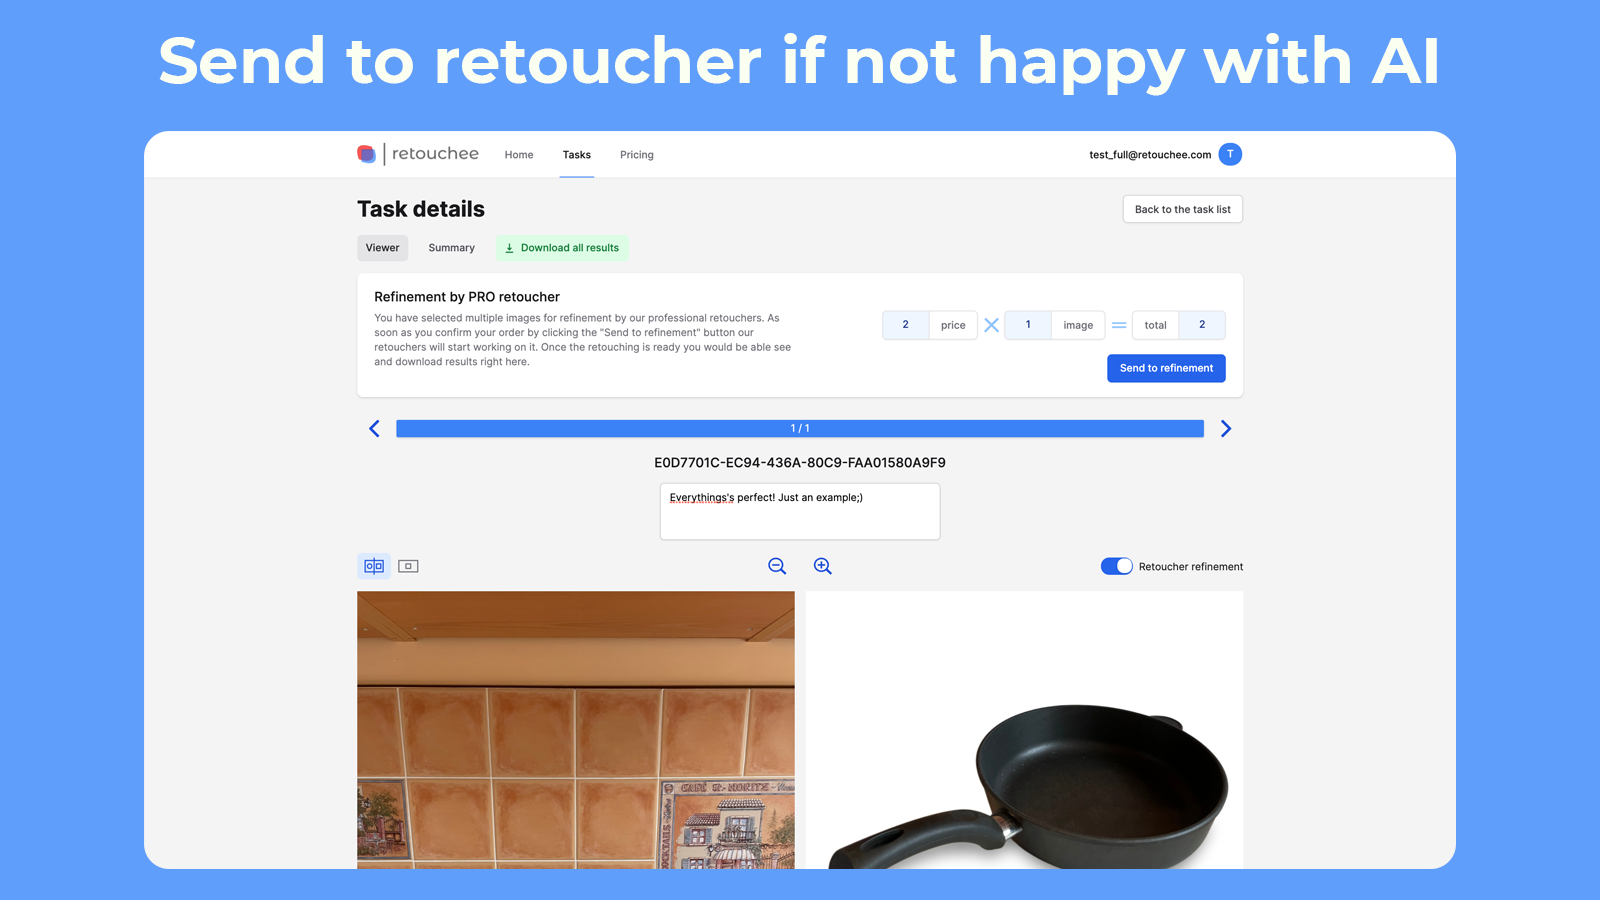 Send to retoucher if not happy with AI